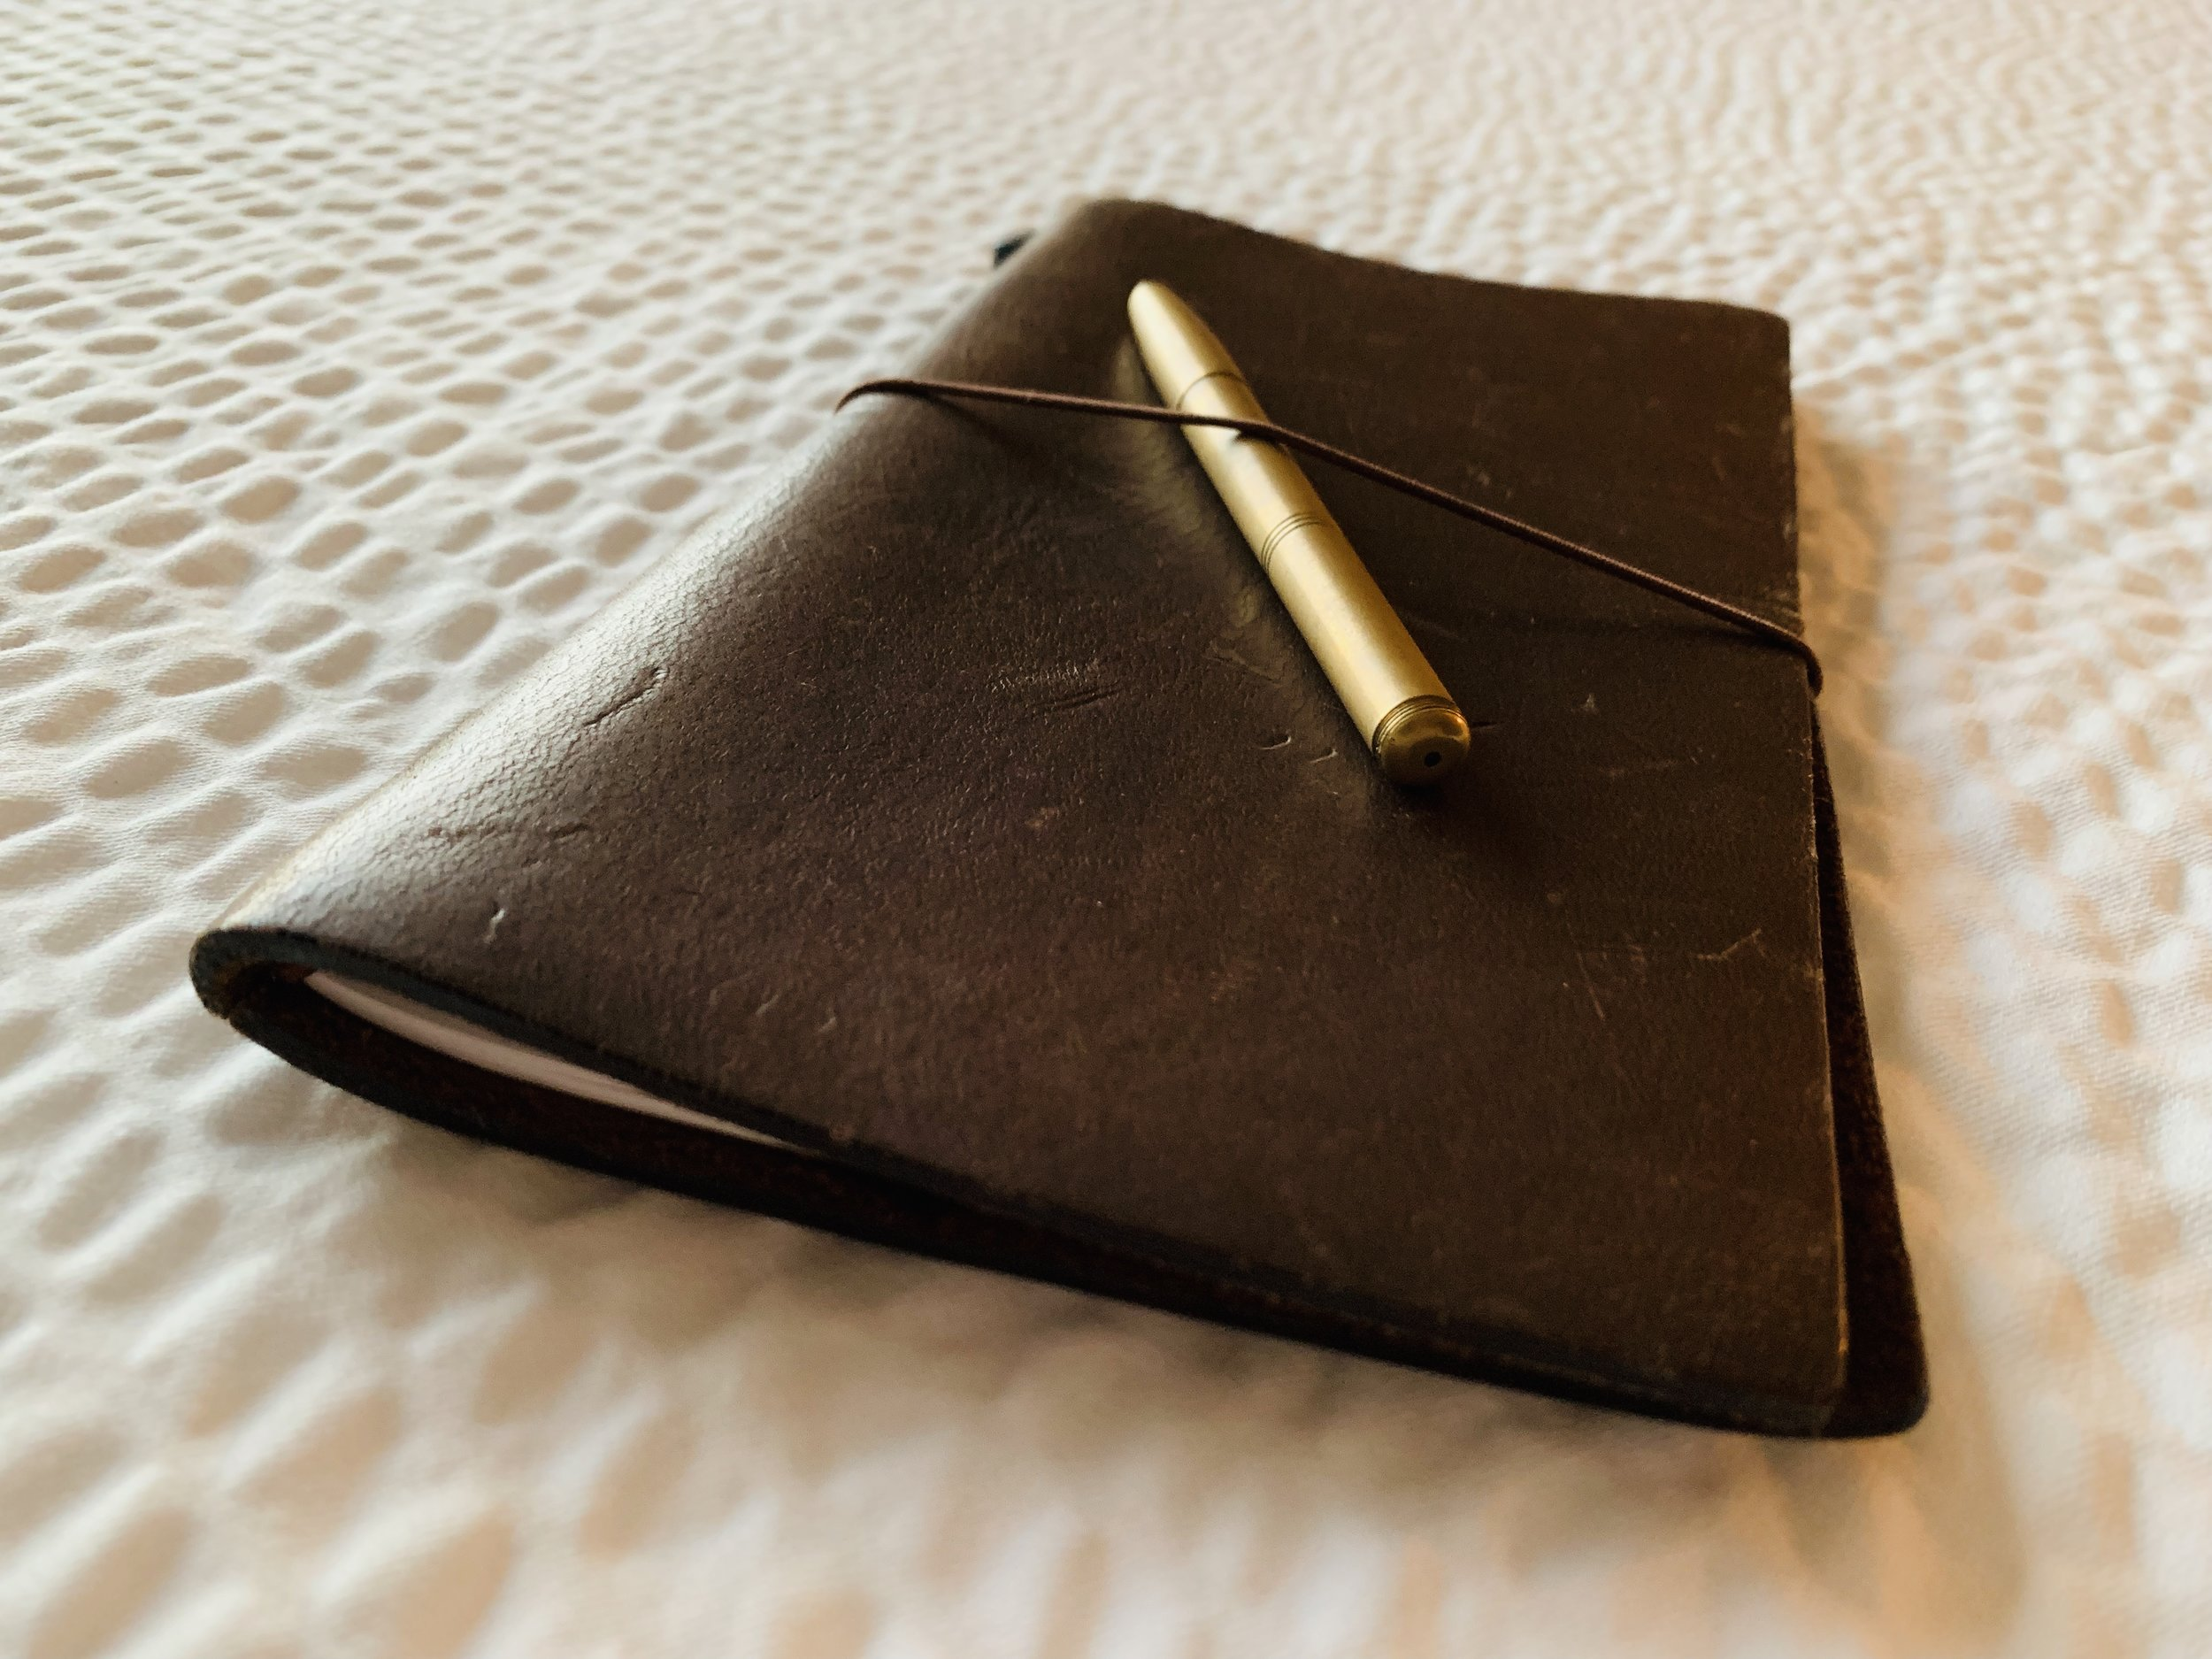 My Everyday Carry - I love learning about what other people carry around every day. I think it's a fascinating way to see into another person's life, so I thought it'd be fun to share a bit of myself in that way.